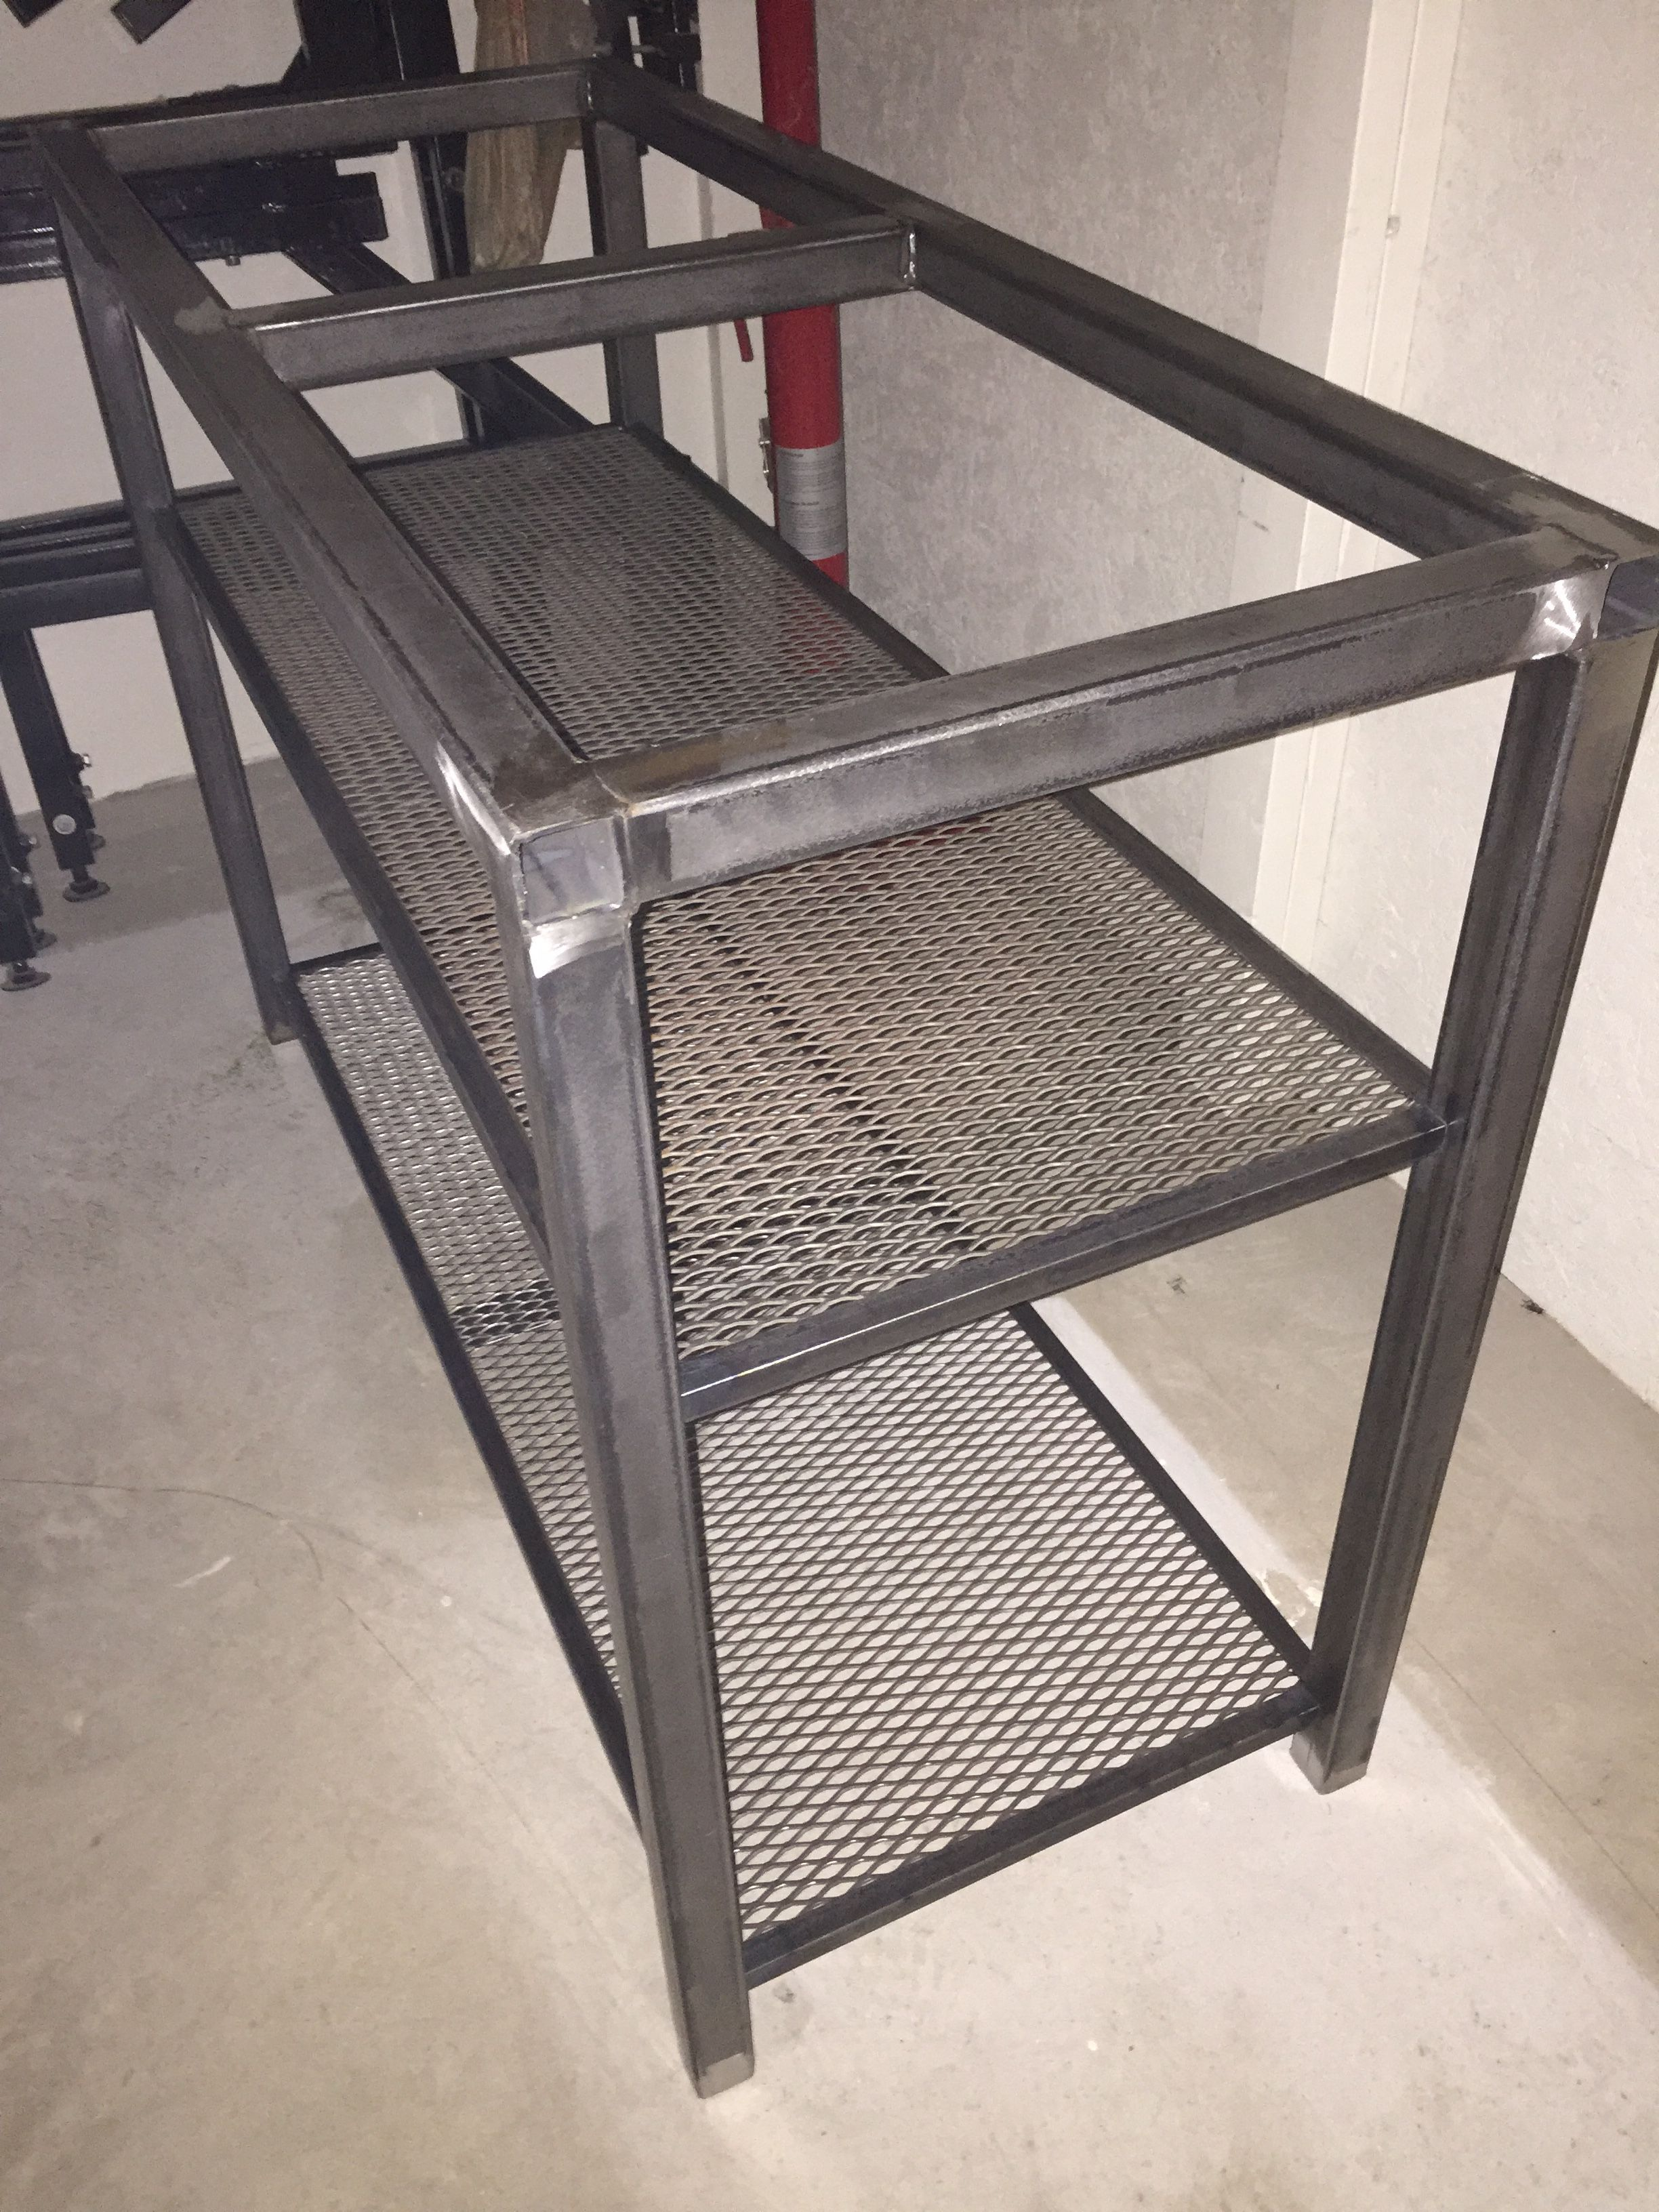 15 Steel Table Frame With Expanded Metal Shelves That Will